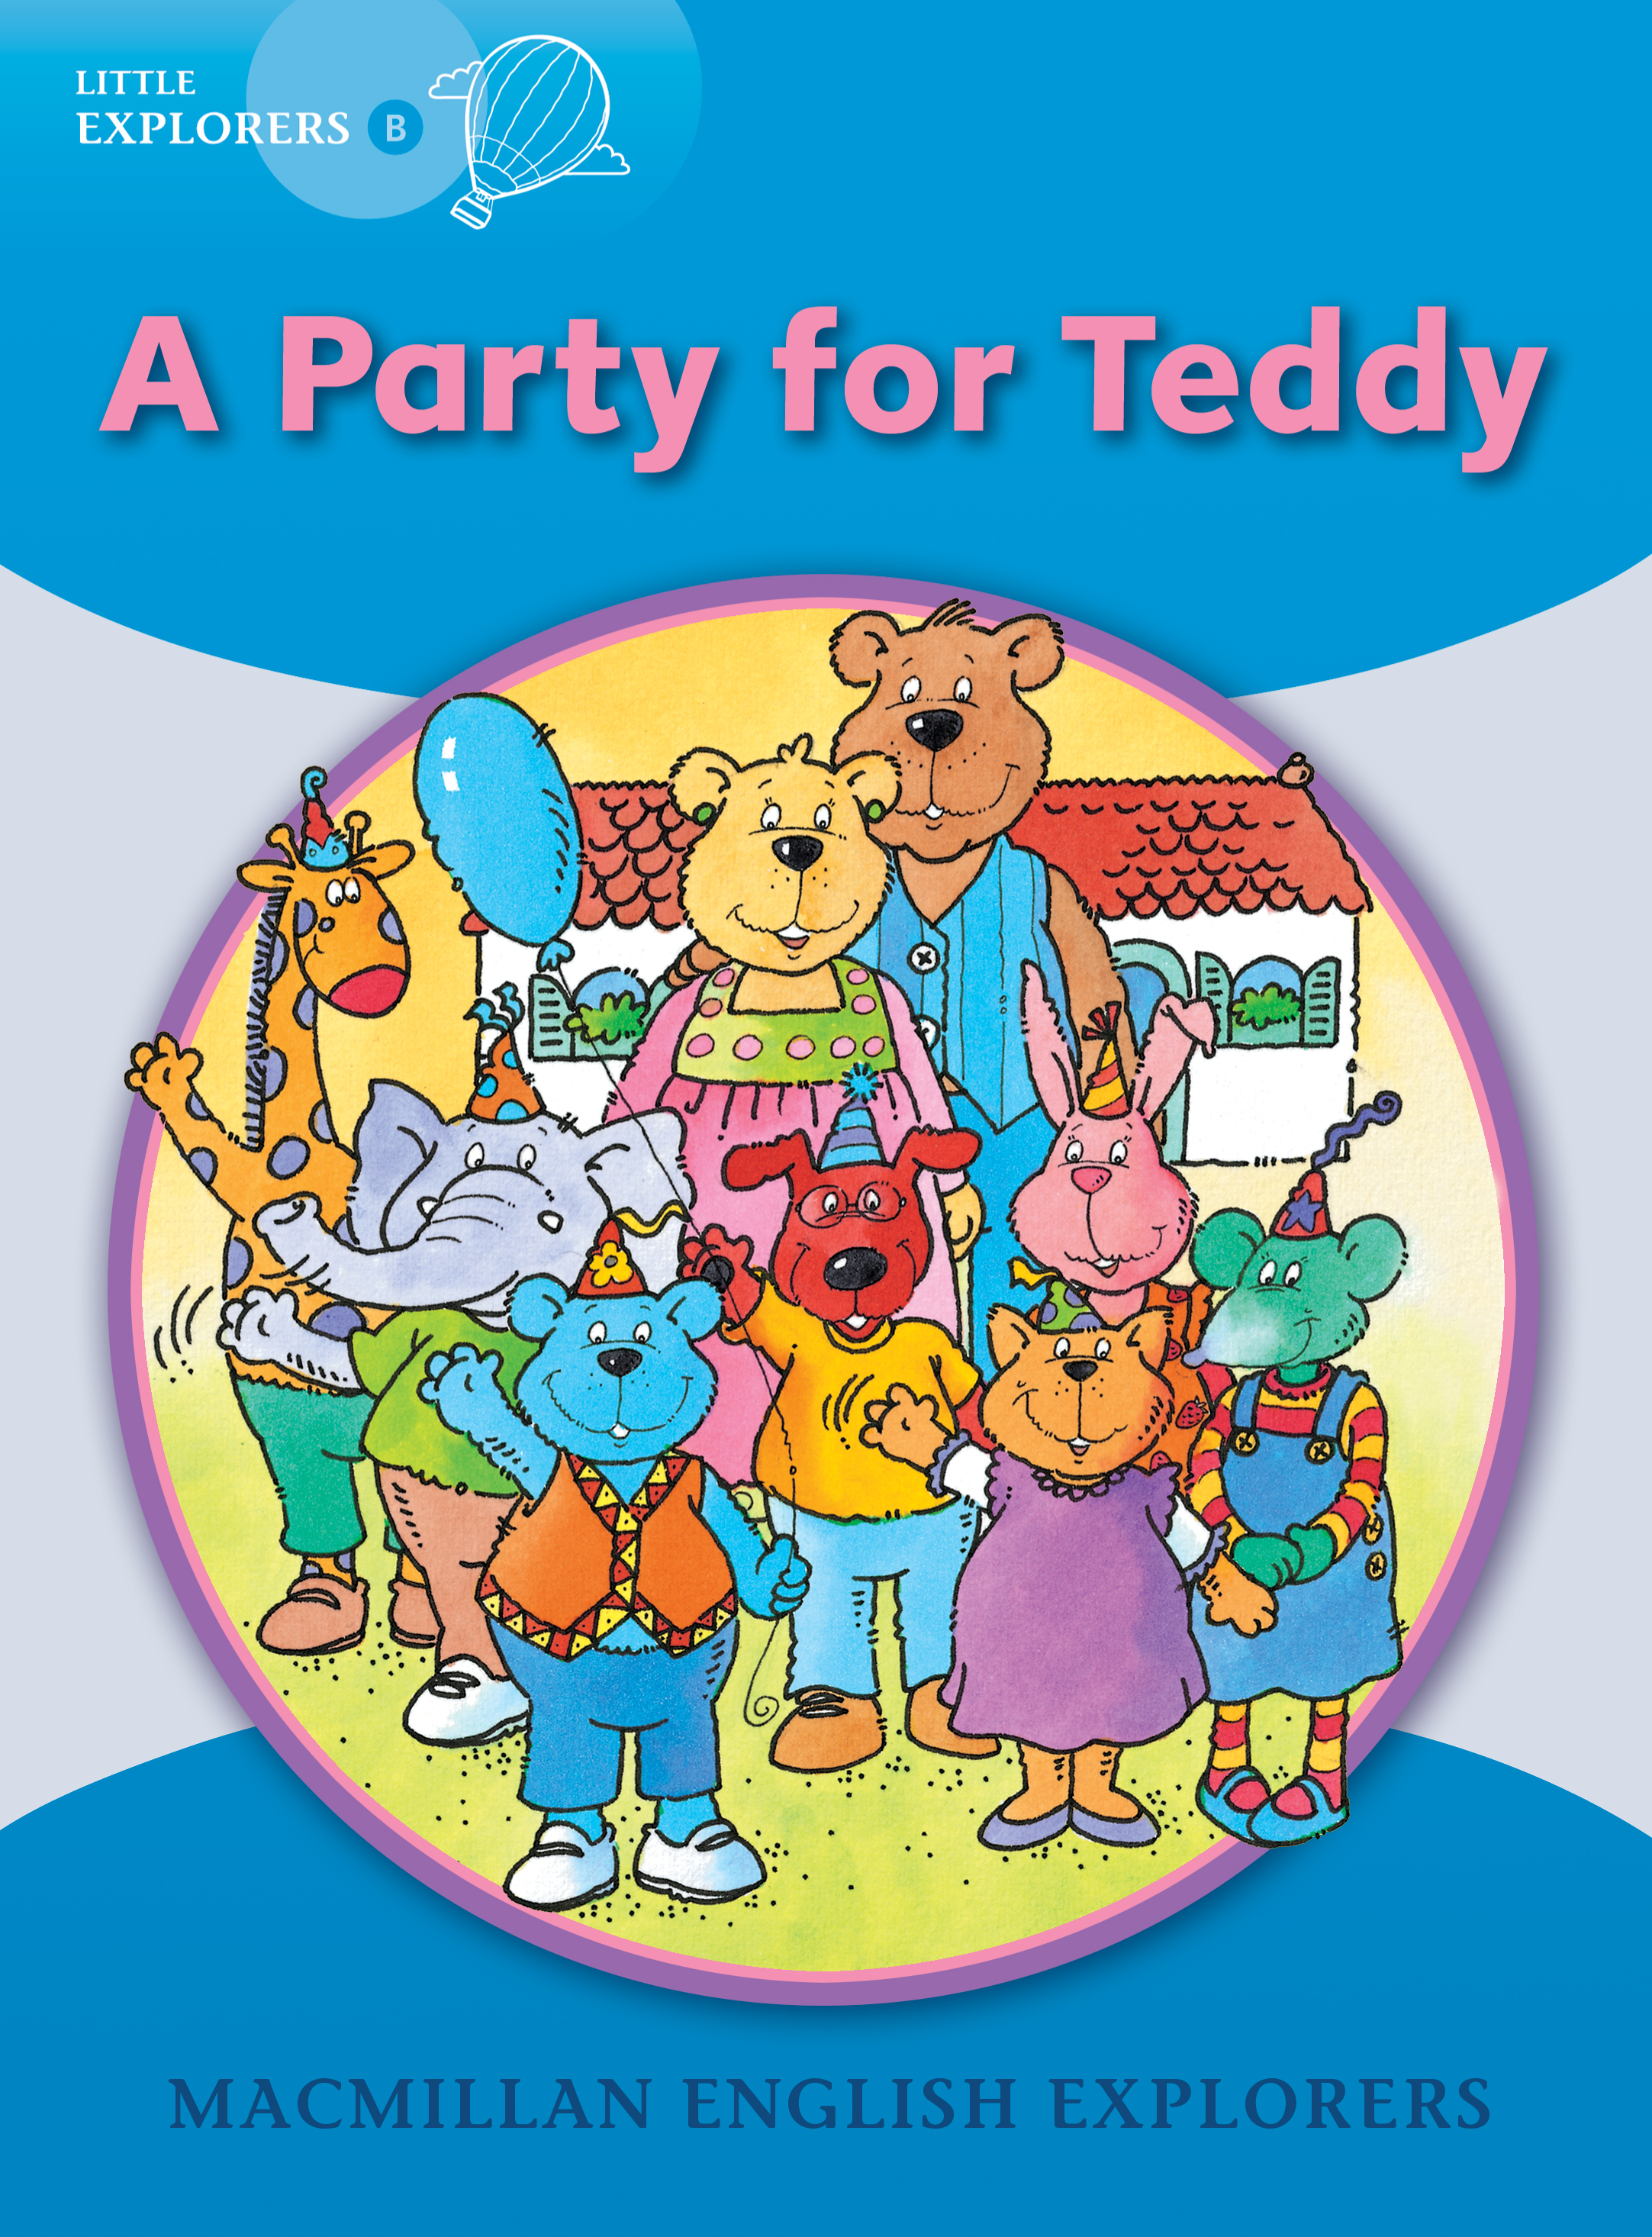 Little Explorers B: A Party for Teddy